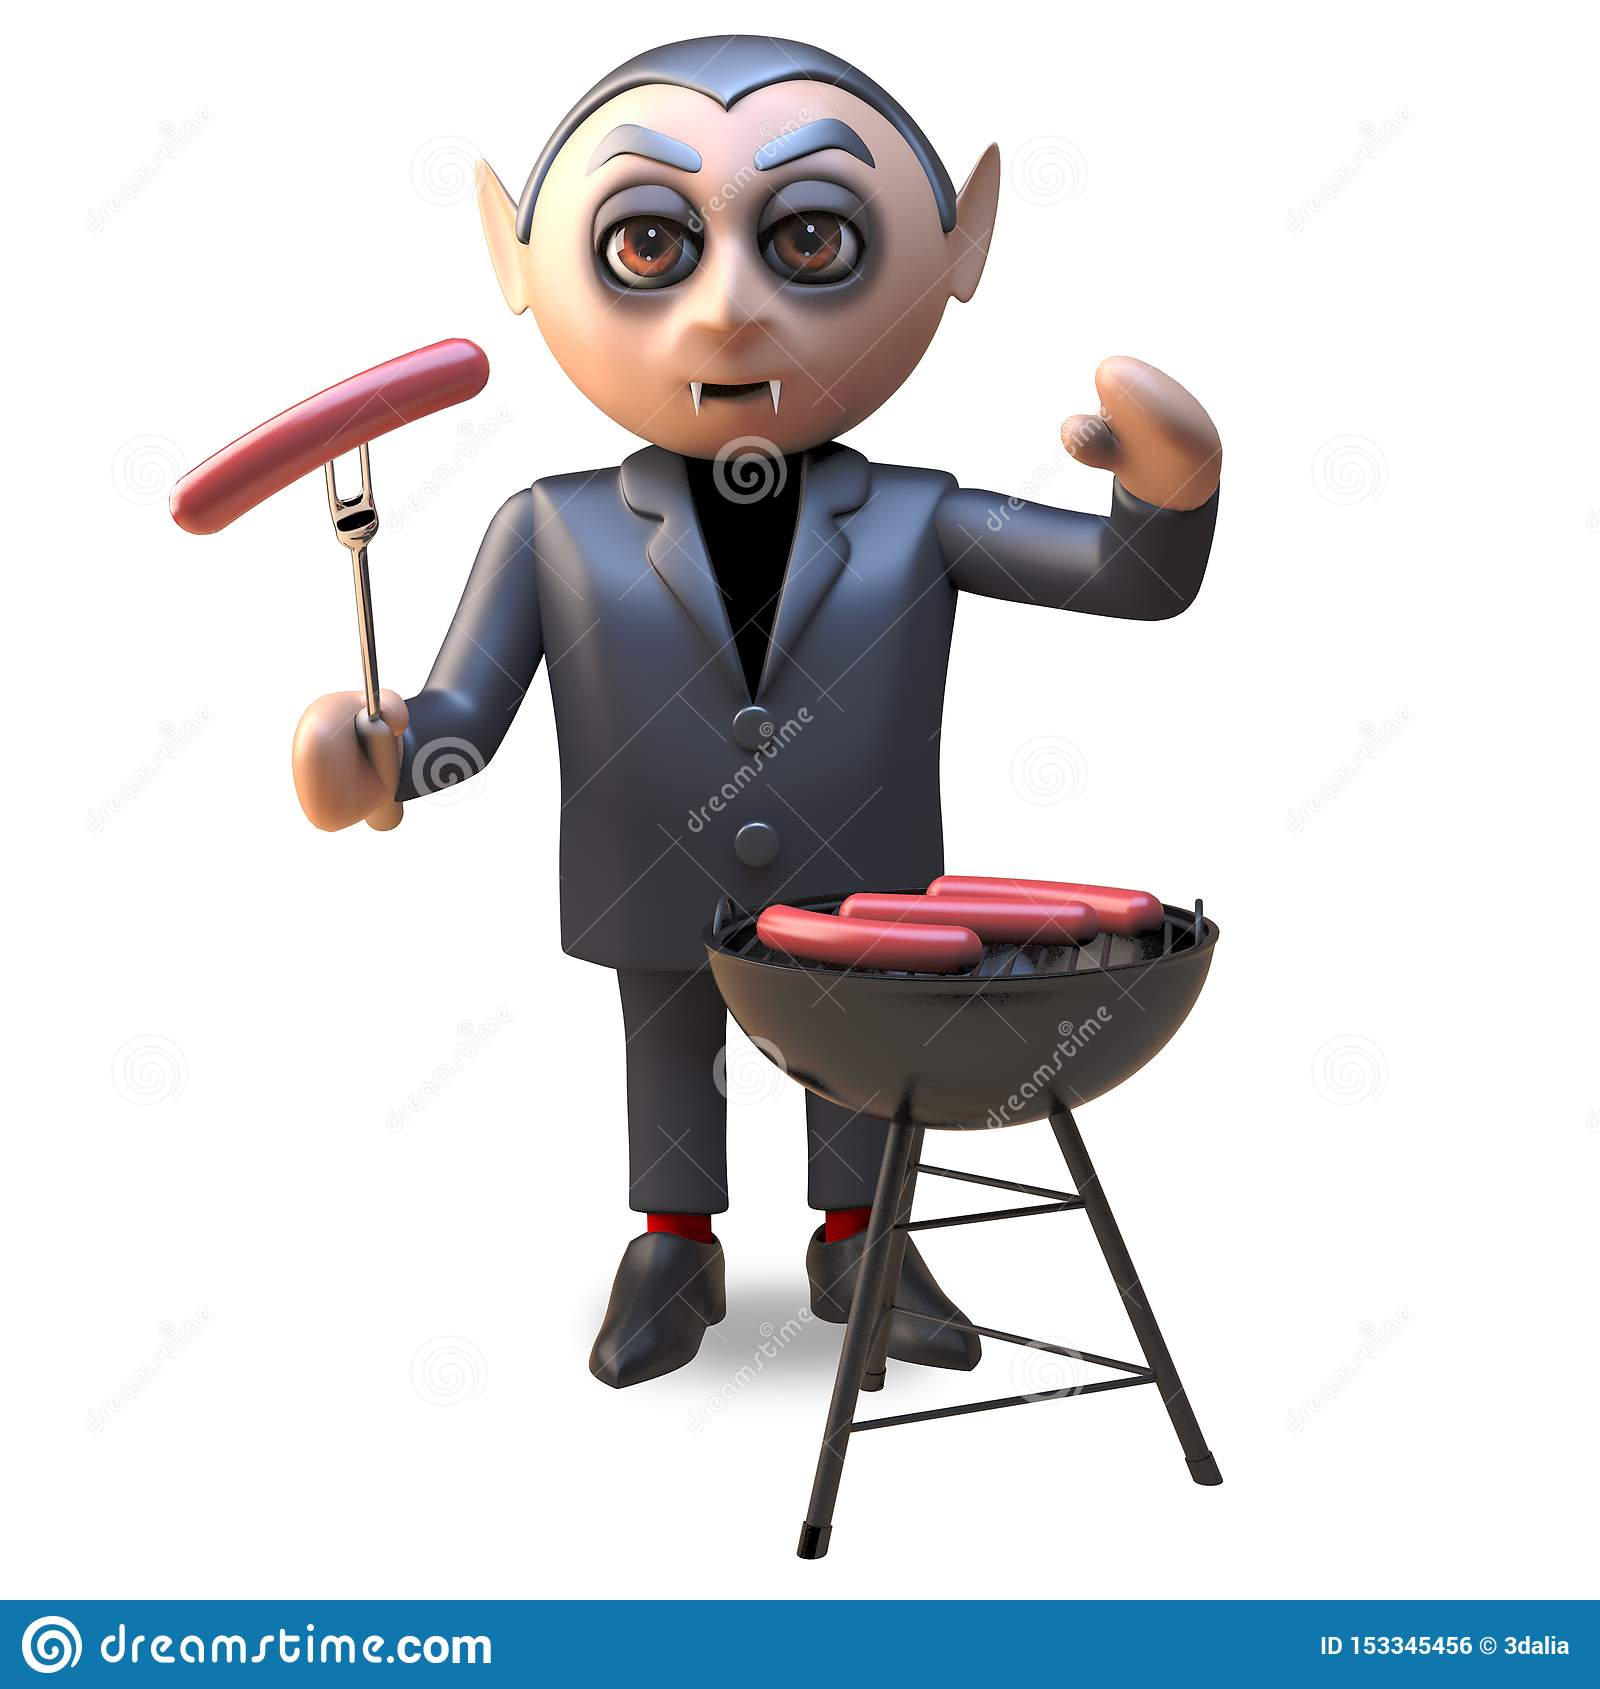 3d cartoon of a hungry Hallowee vampire dracula cooking on a barbecue bbq, 3d illustration